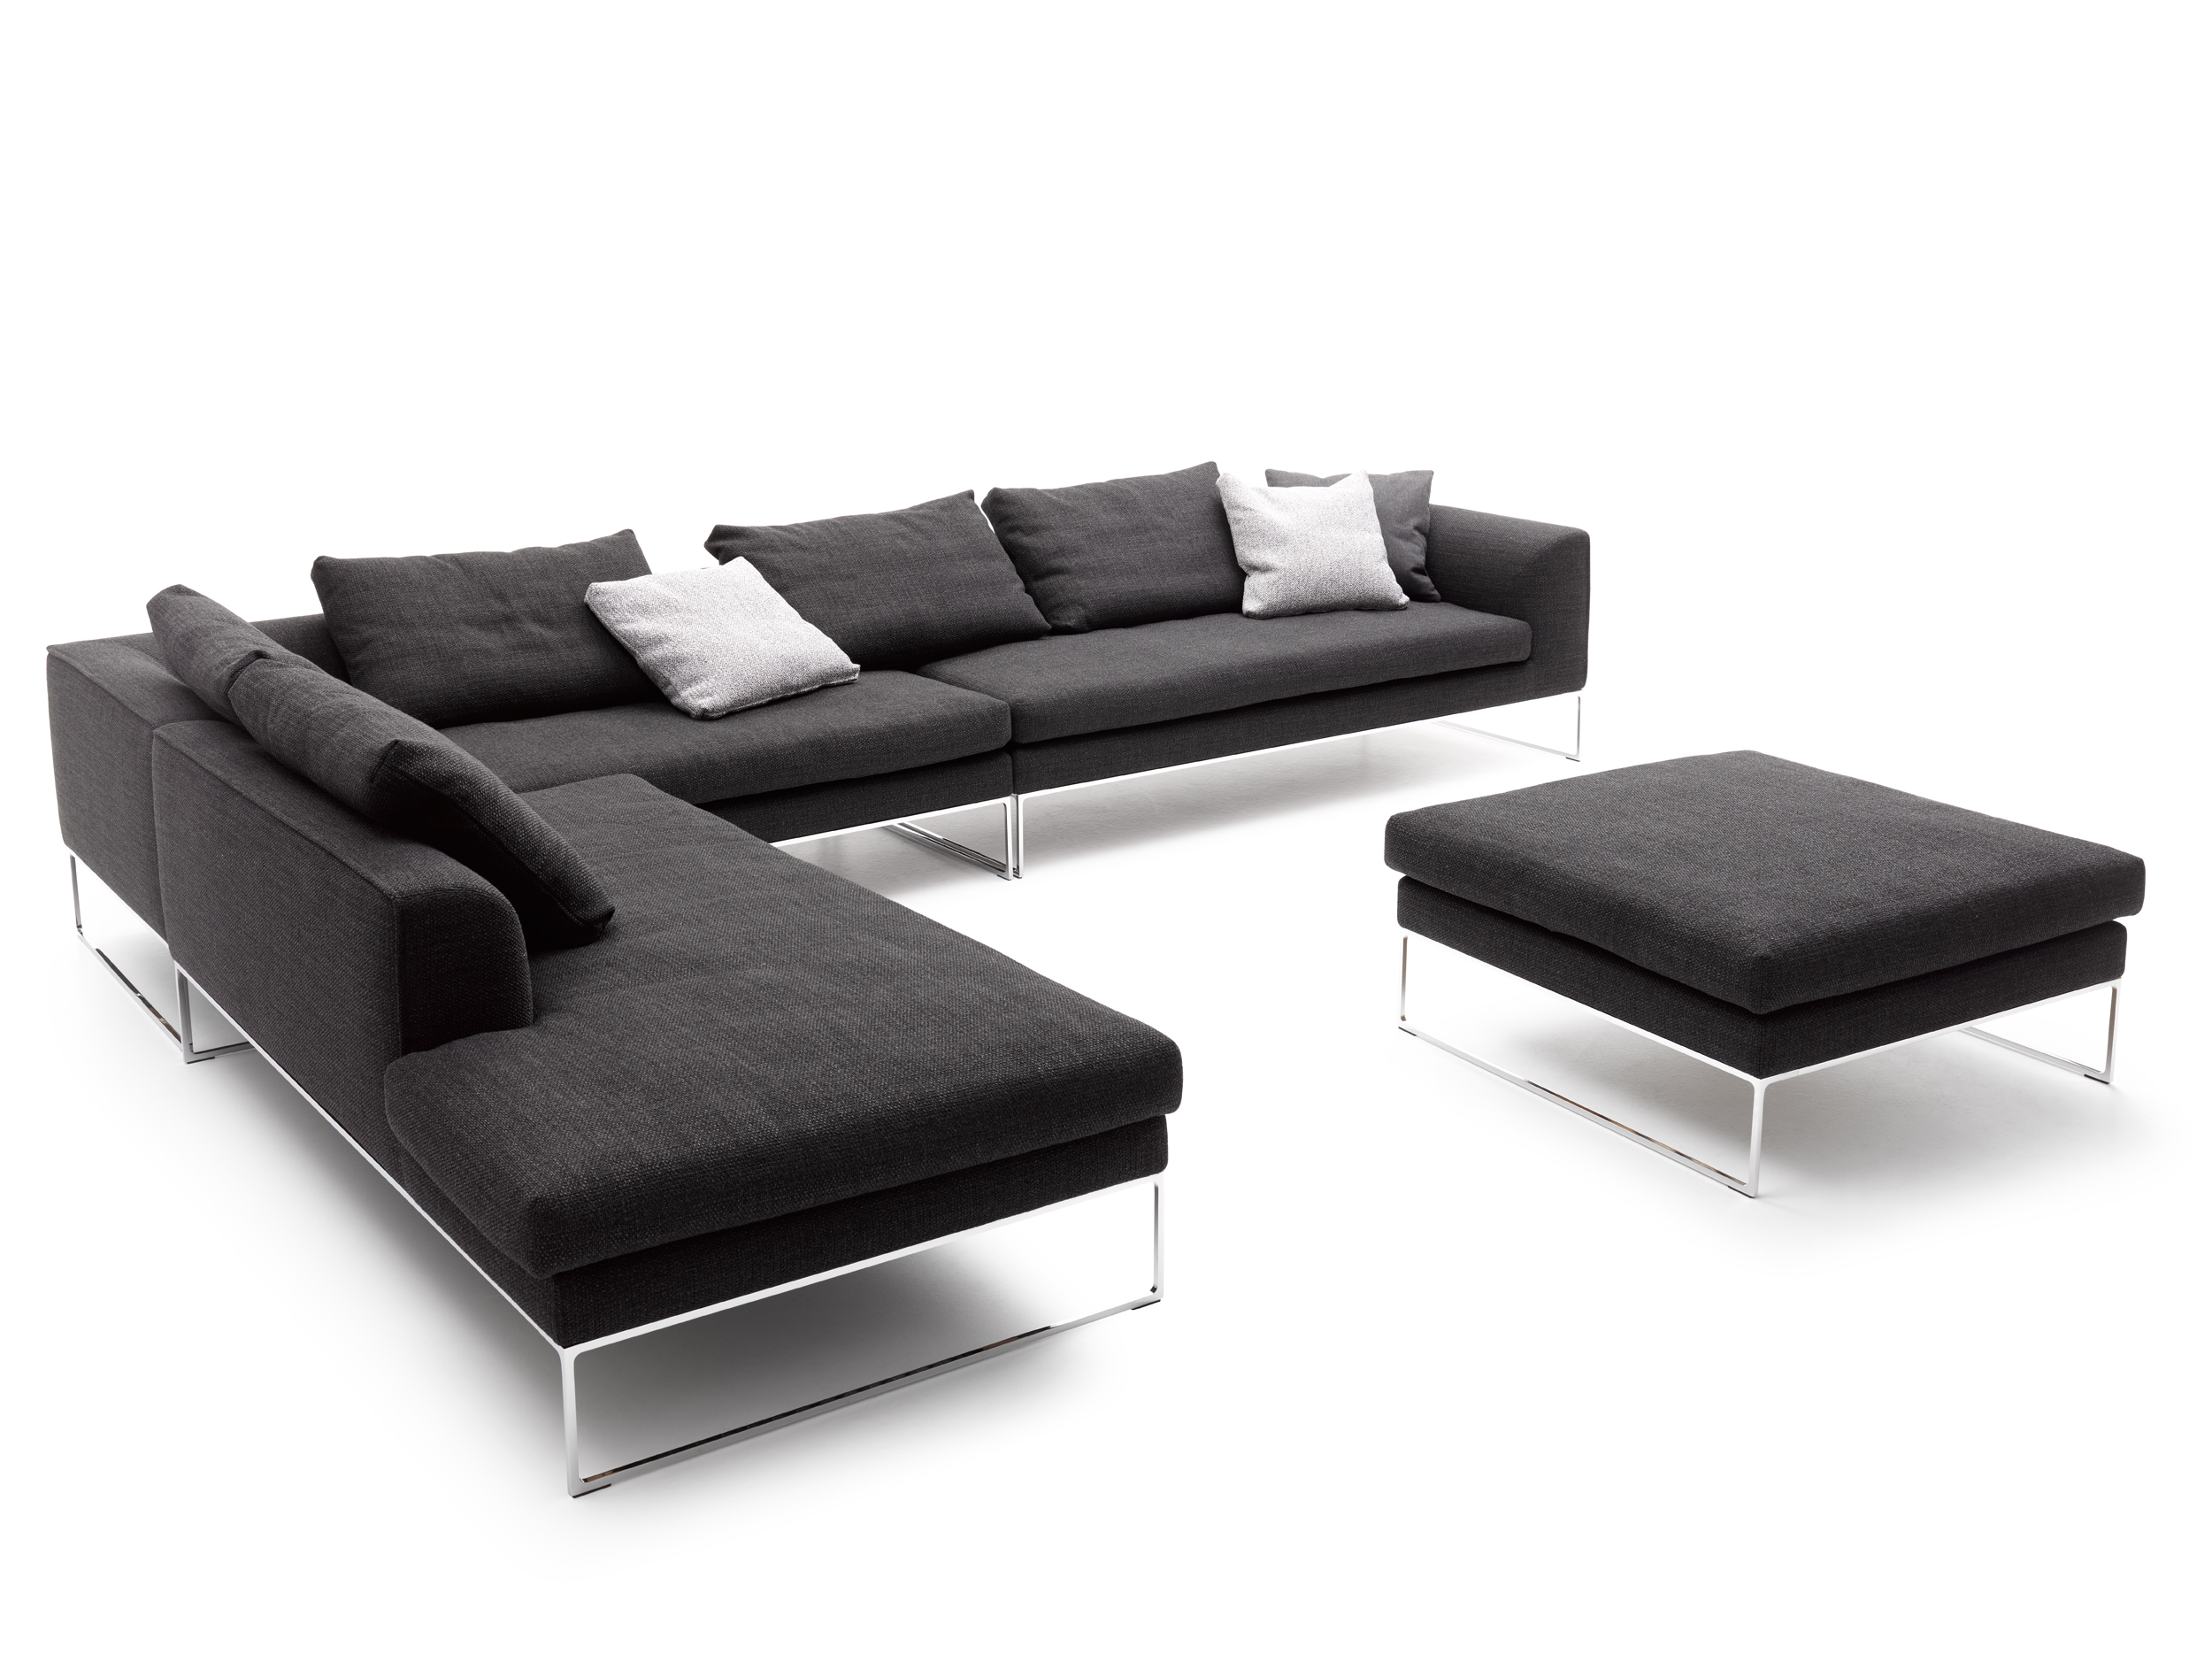 mell lounge sofa professional cor. Black Bedroom Furniture Sets. Home Design Ideas